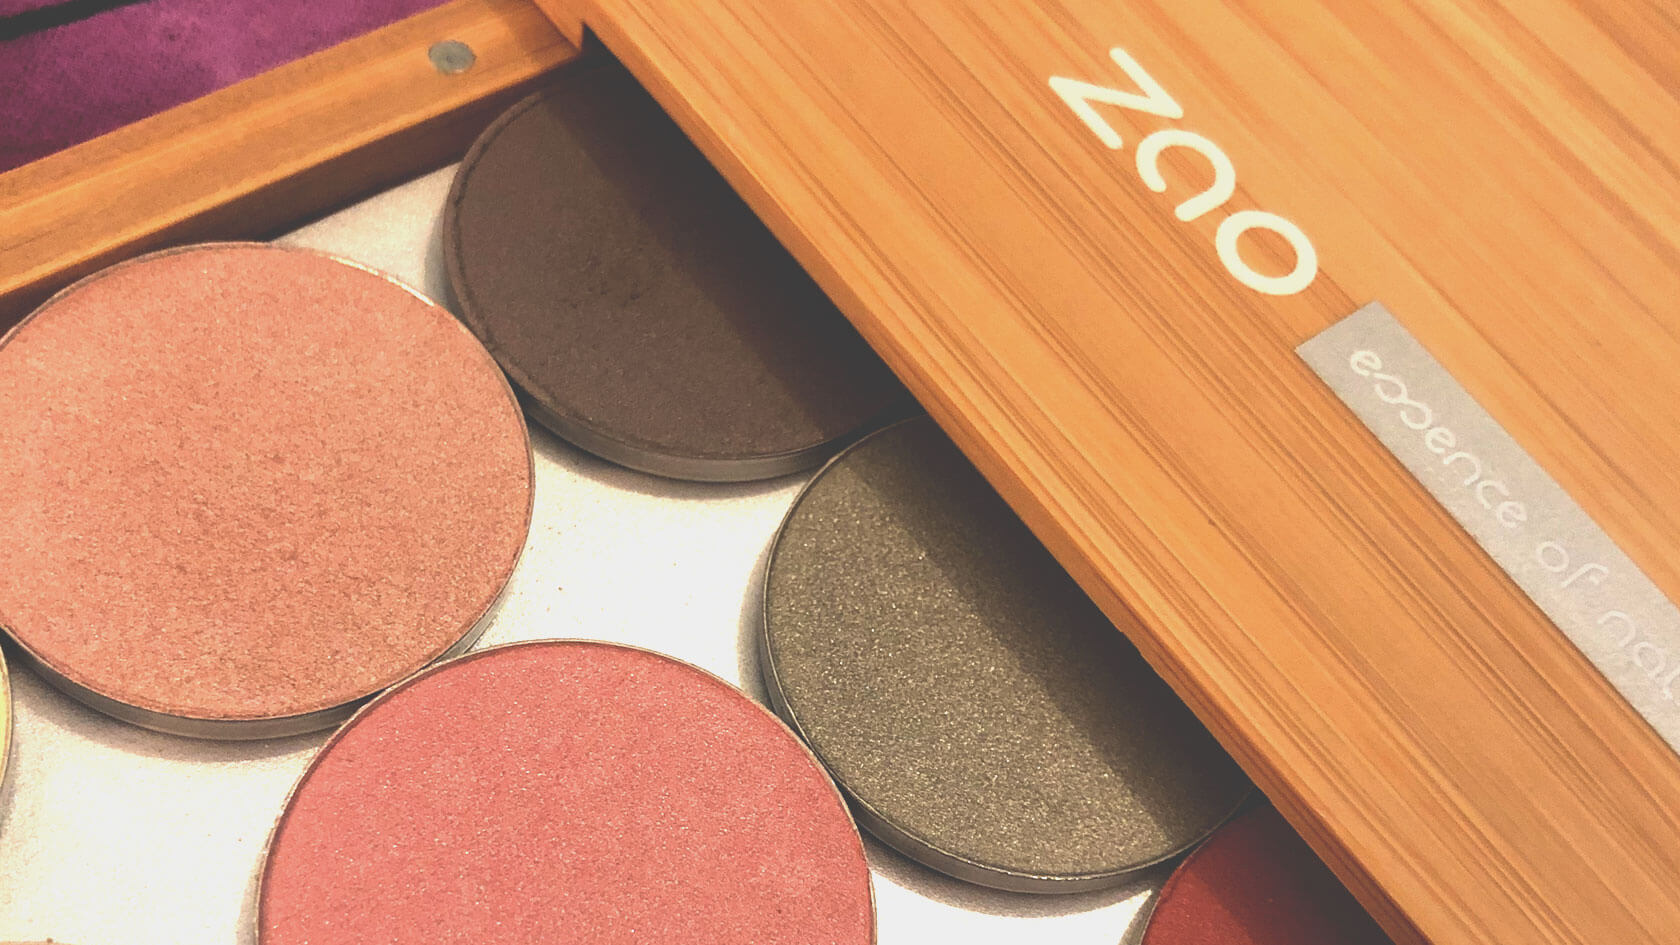 Refillable bamboo makeup palette with magnetic backing